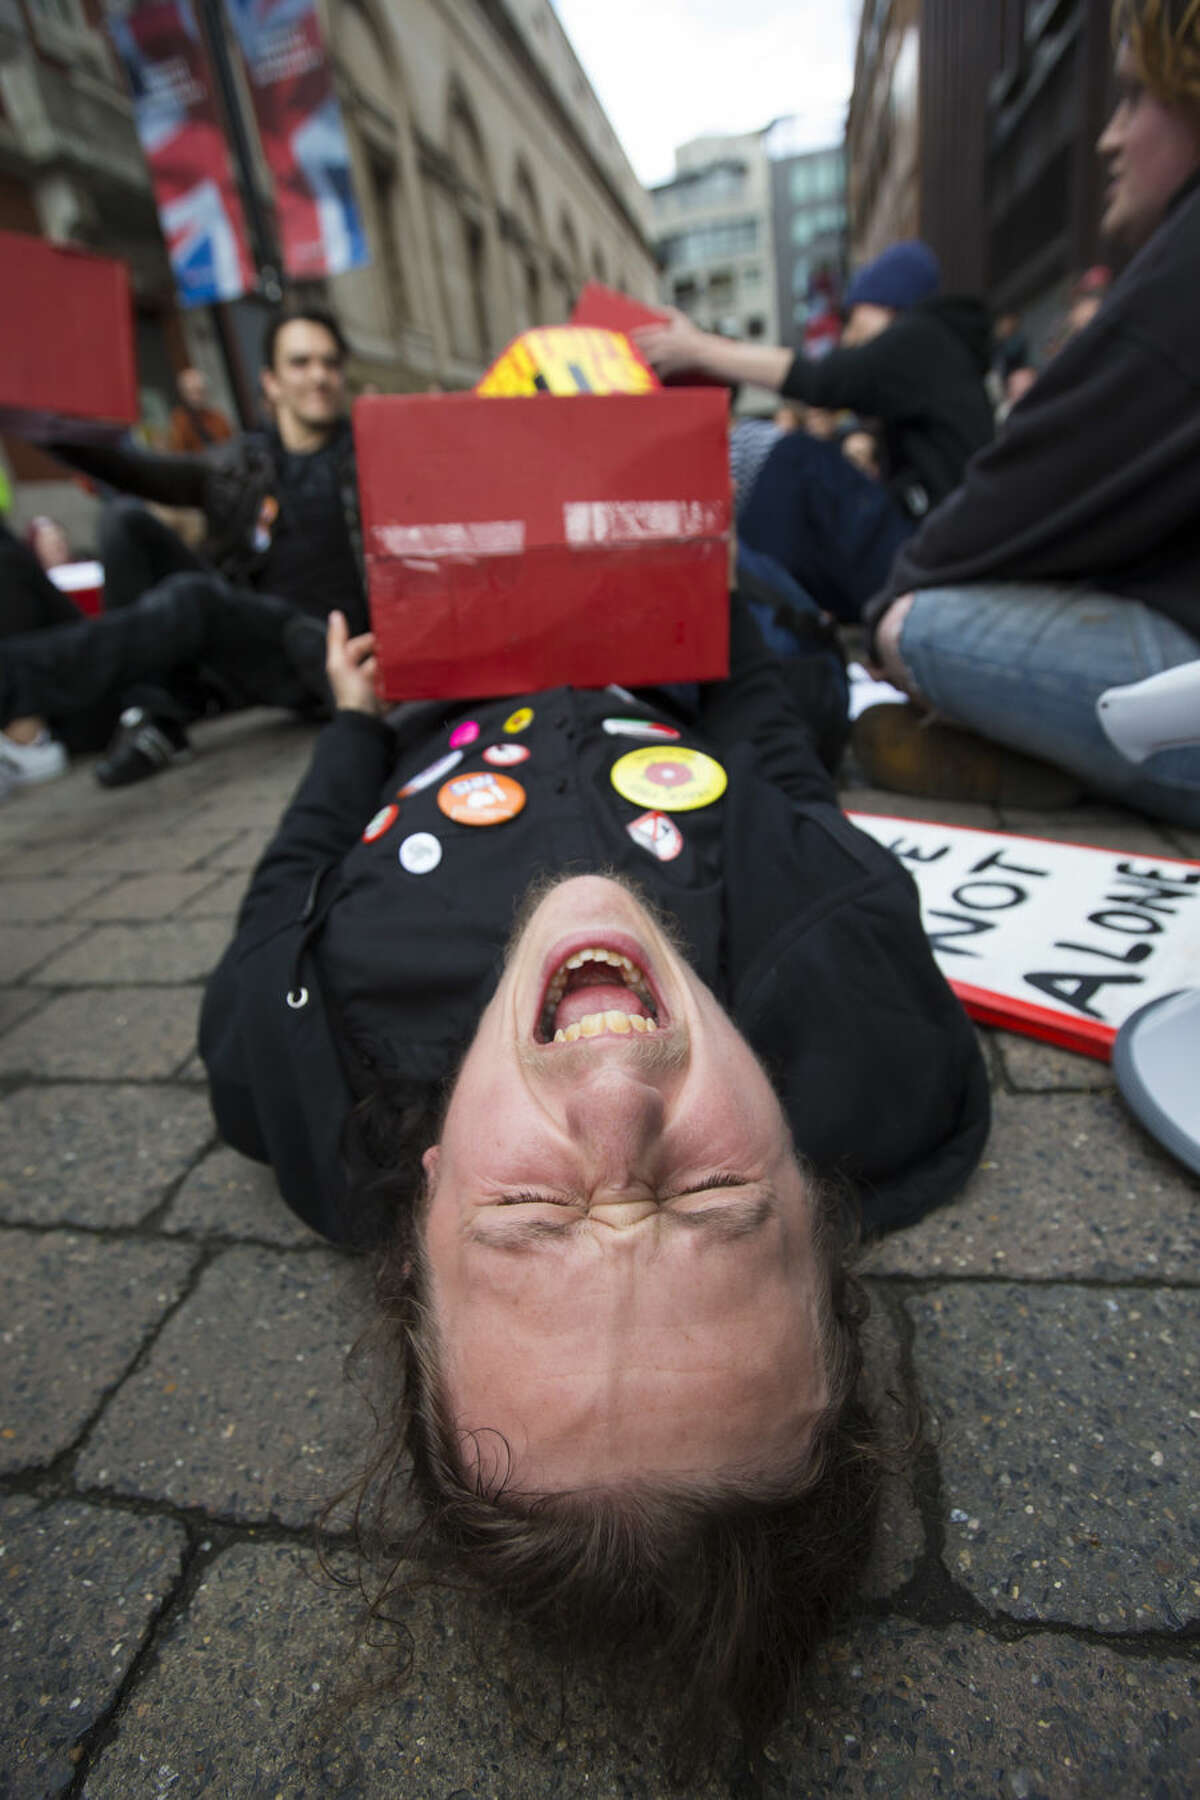 An anti-austerity protestor reacts as he lies on the ground, joining about 150 protesters demonstrating outside Britain's Conservative Party Conference, Manchester, England, Monday Oct. 5, 2015. The ruling Conservative Party continue their annual conference on Monday, seemingly buoyant after their electoral triumph in May. (AP Photo/Jon Super)